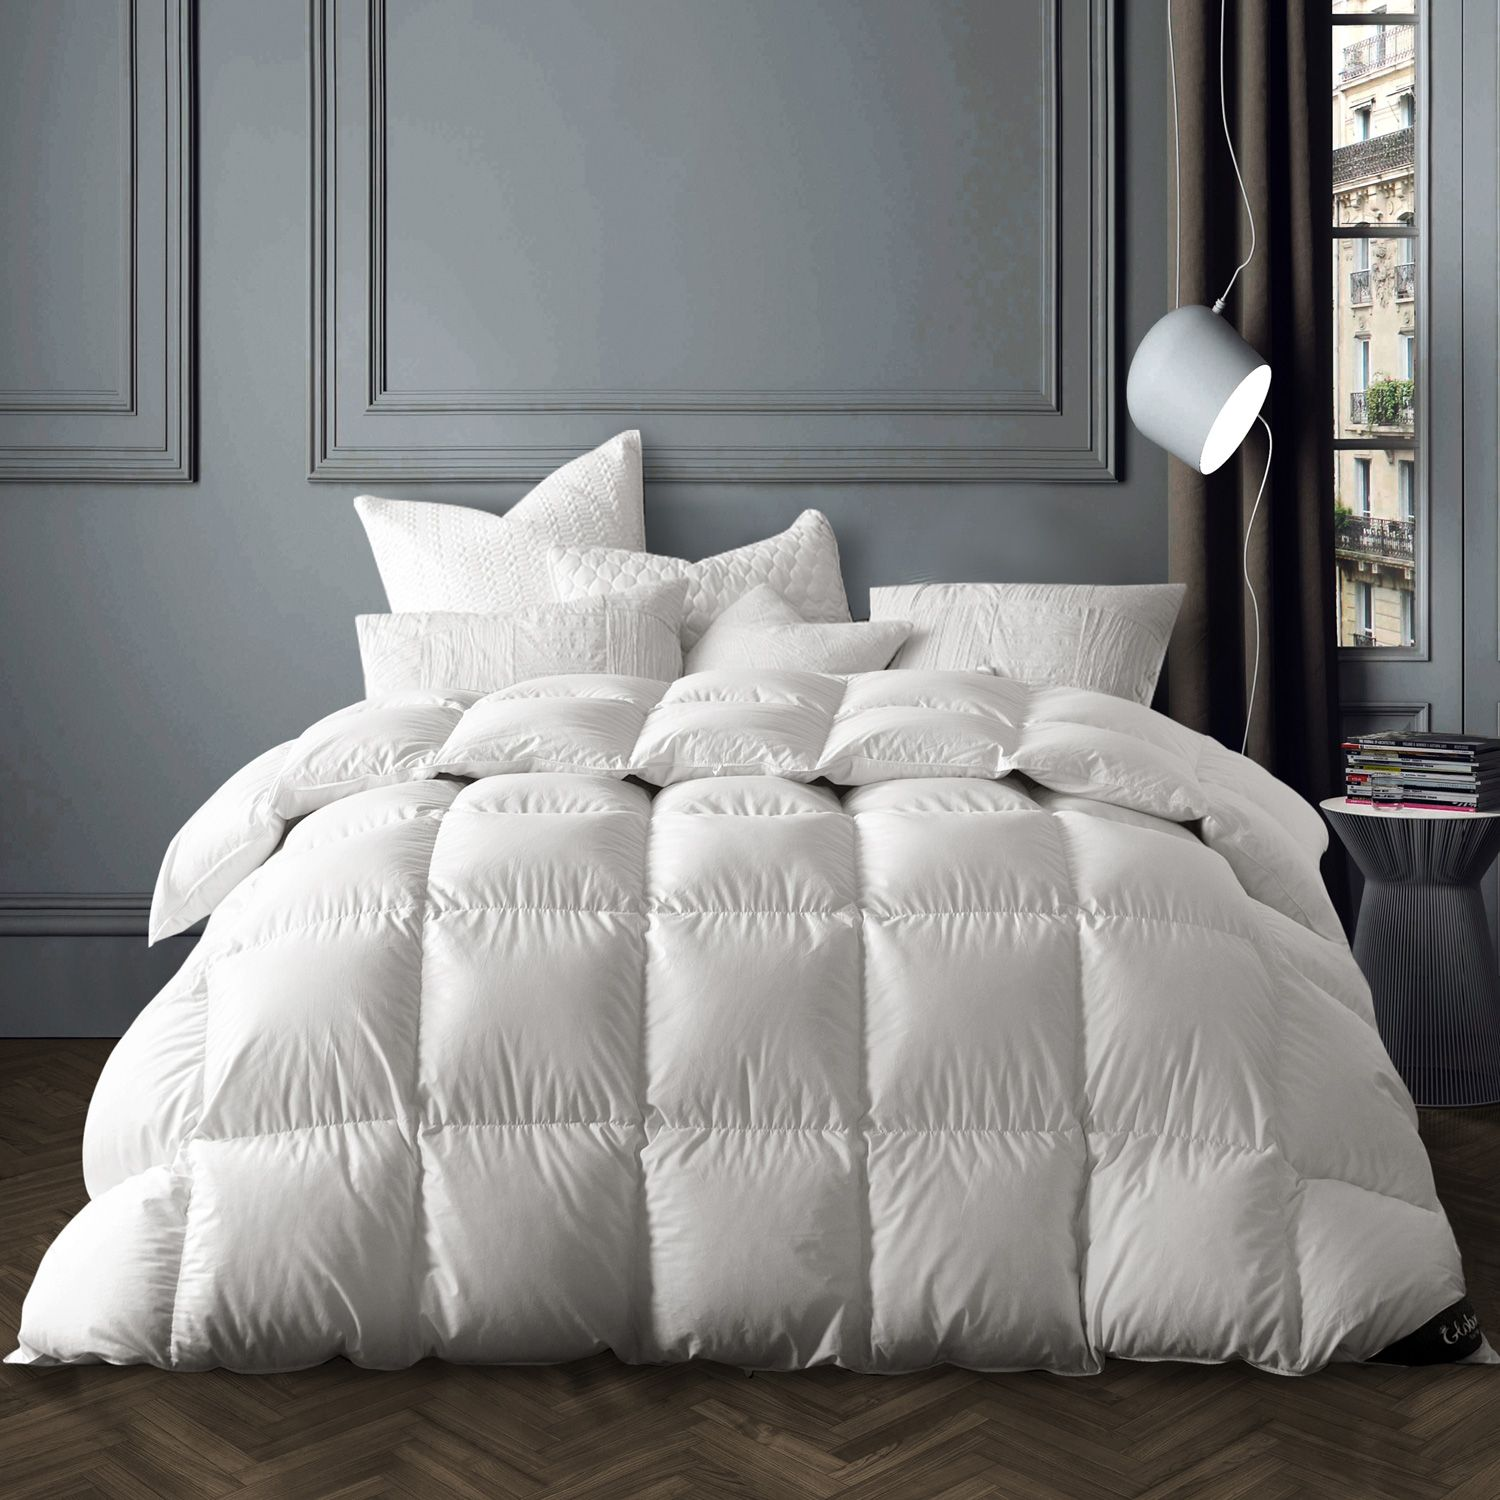 Globon Goose Down Comforter Winter Down Comforter Bed Comforters White Duvet